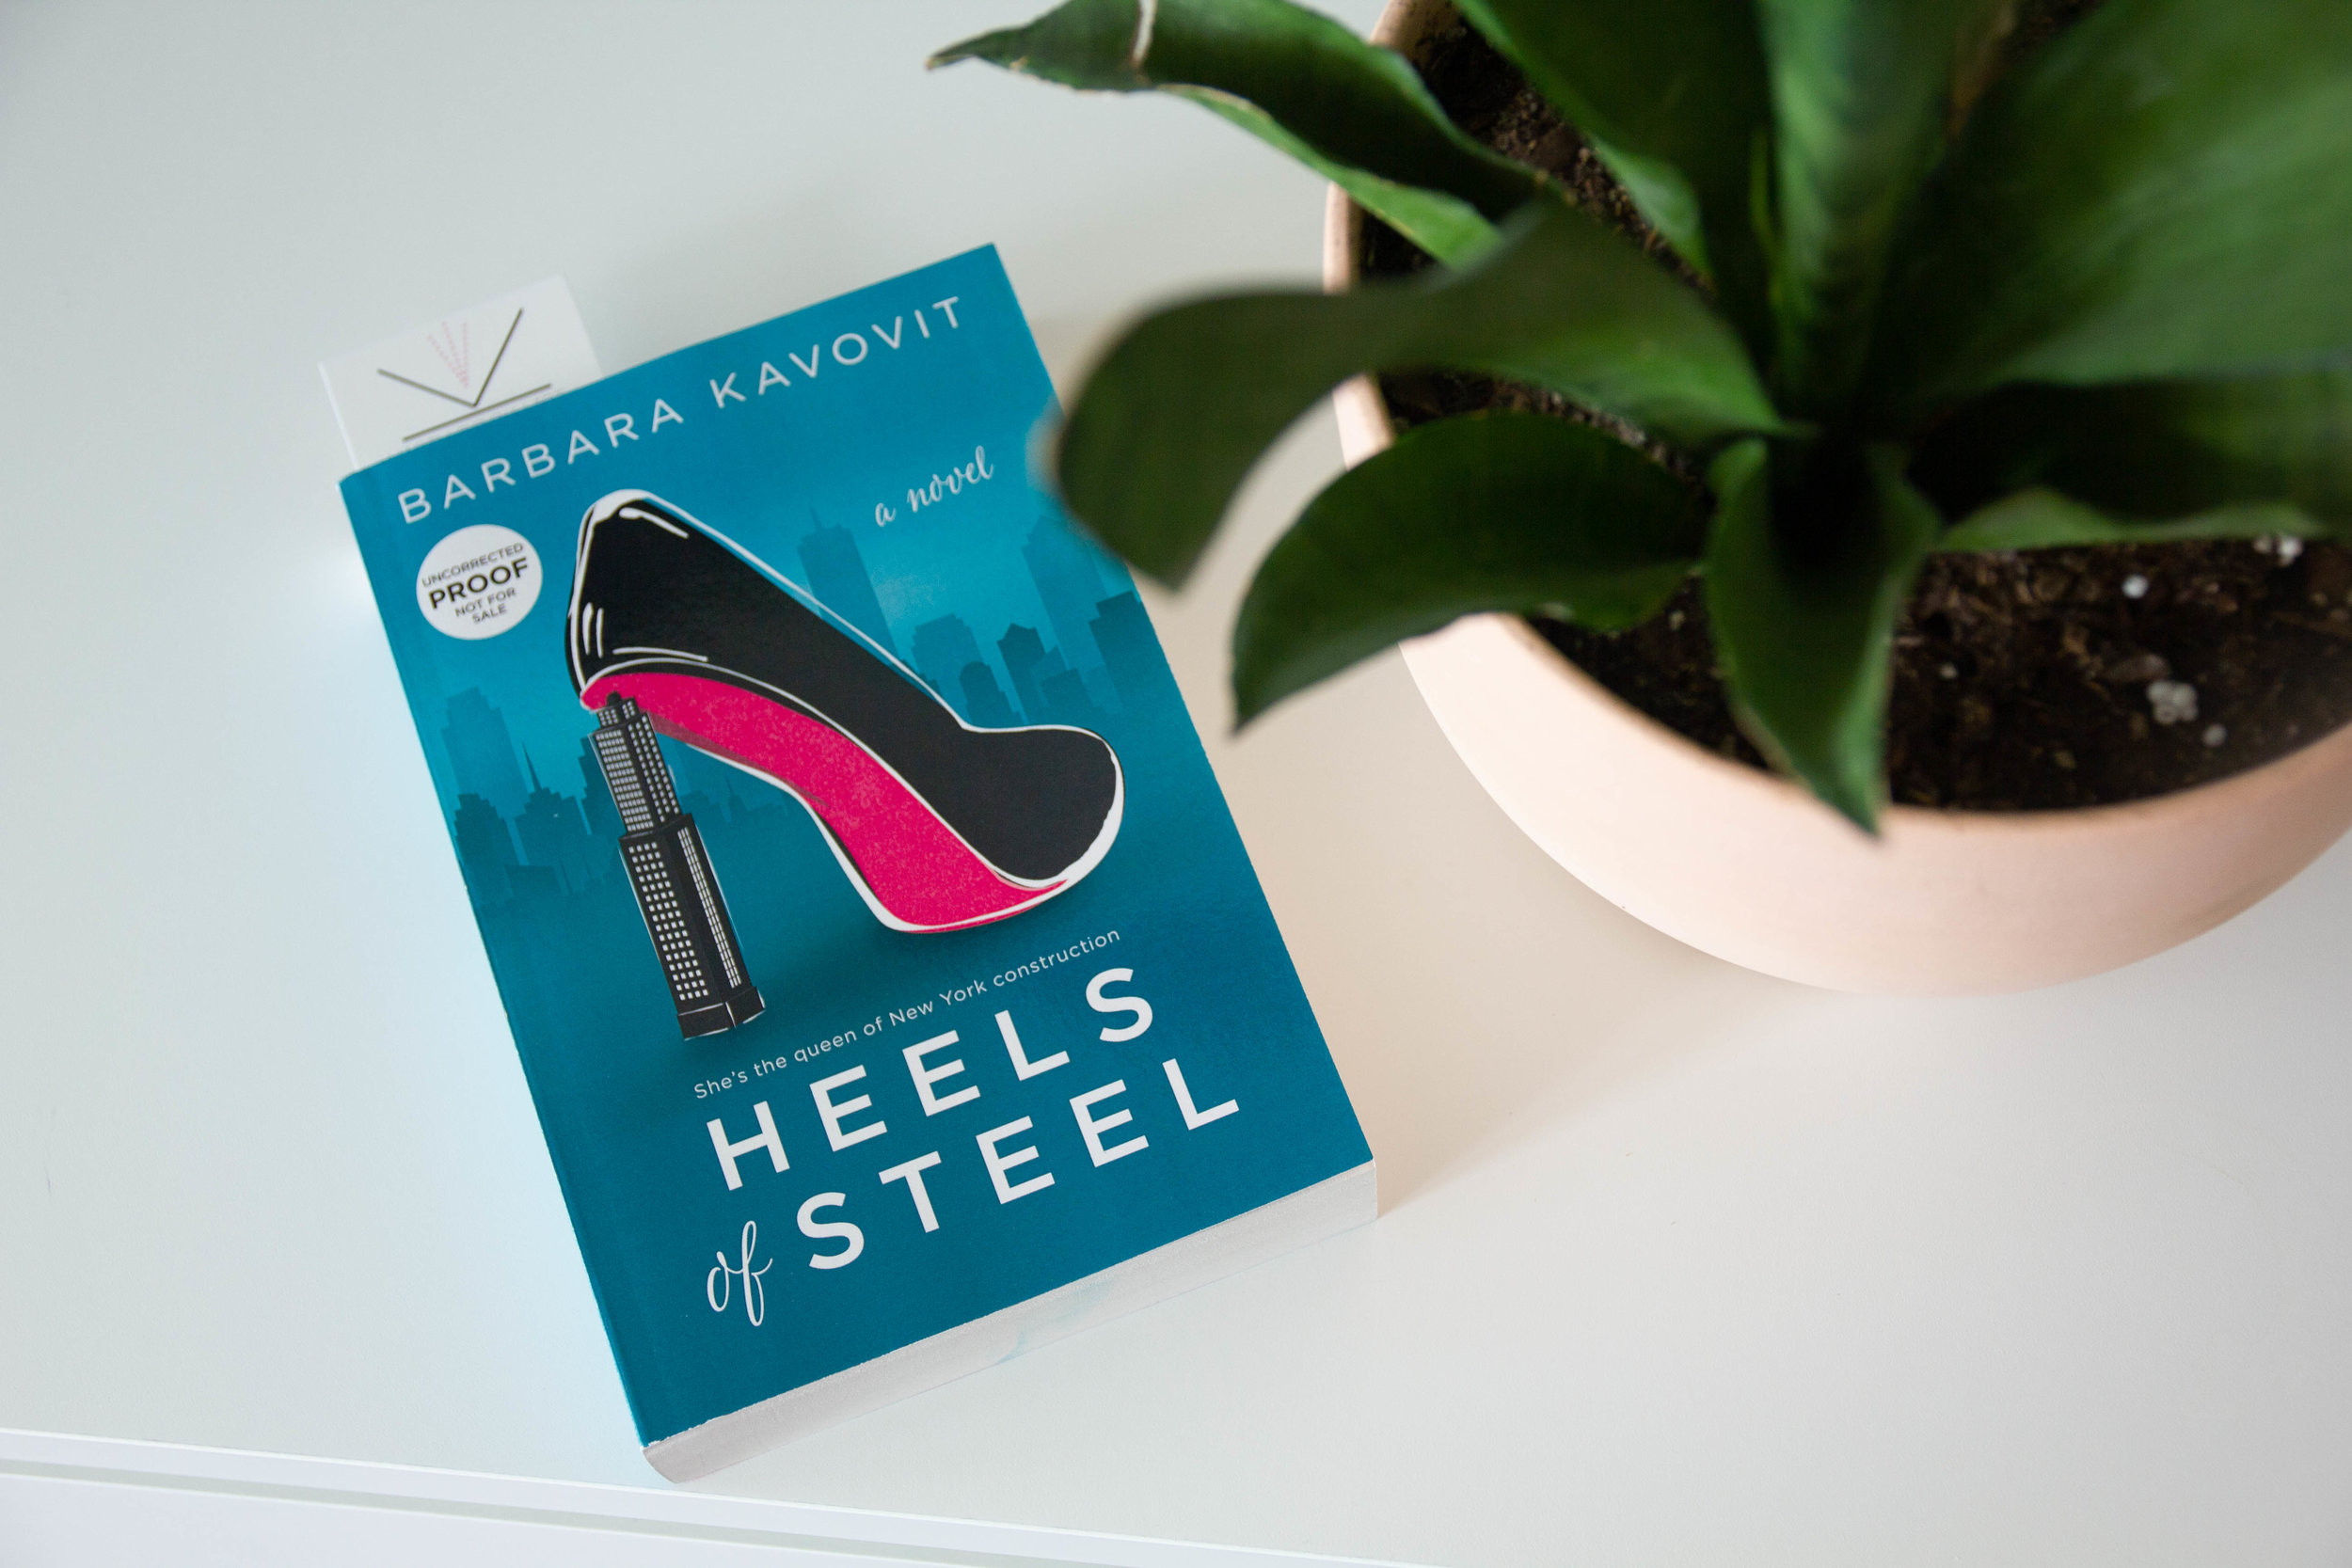 Book Feature - Heels of Steel by Barbara Kavovit